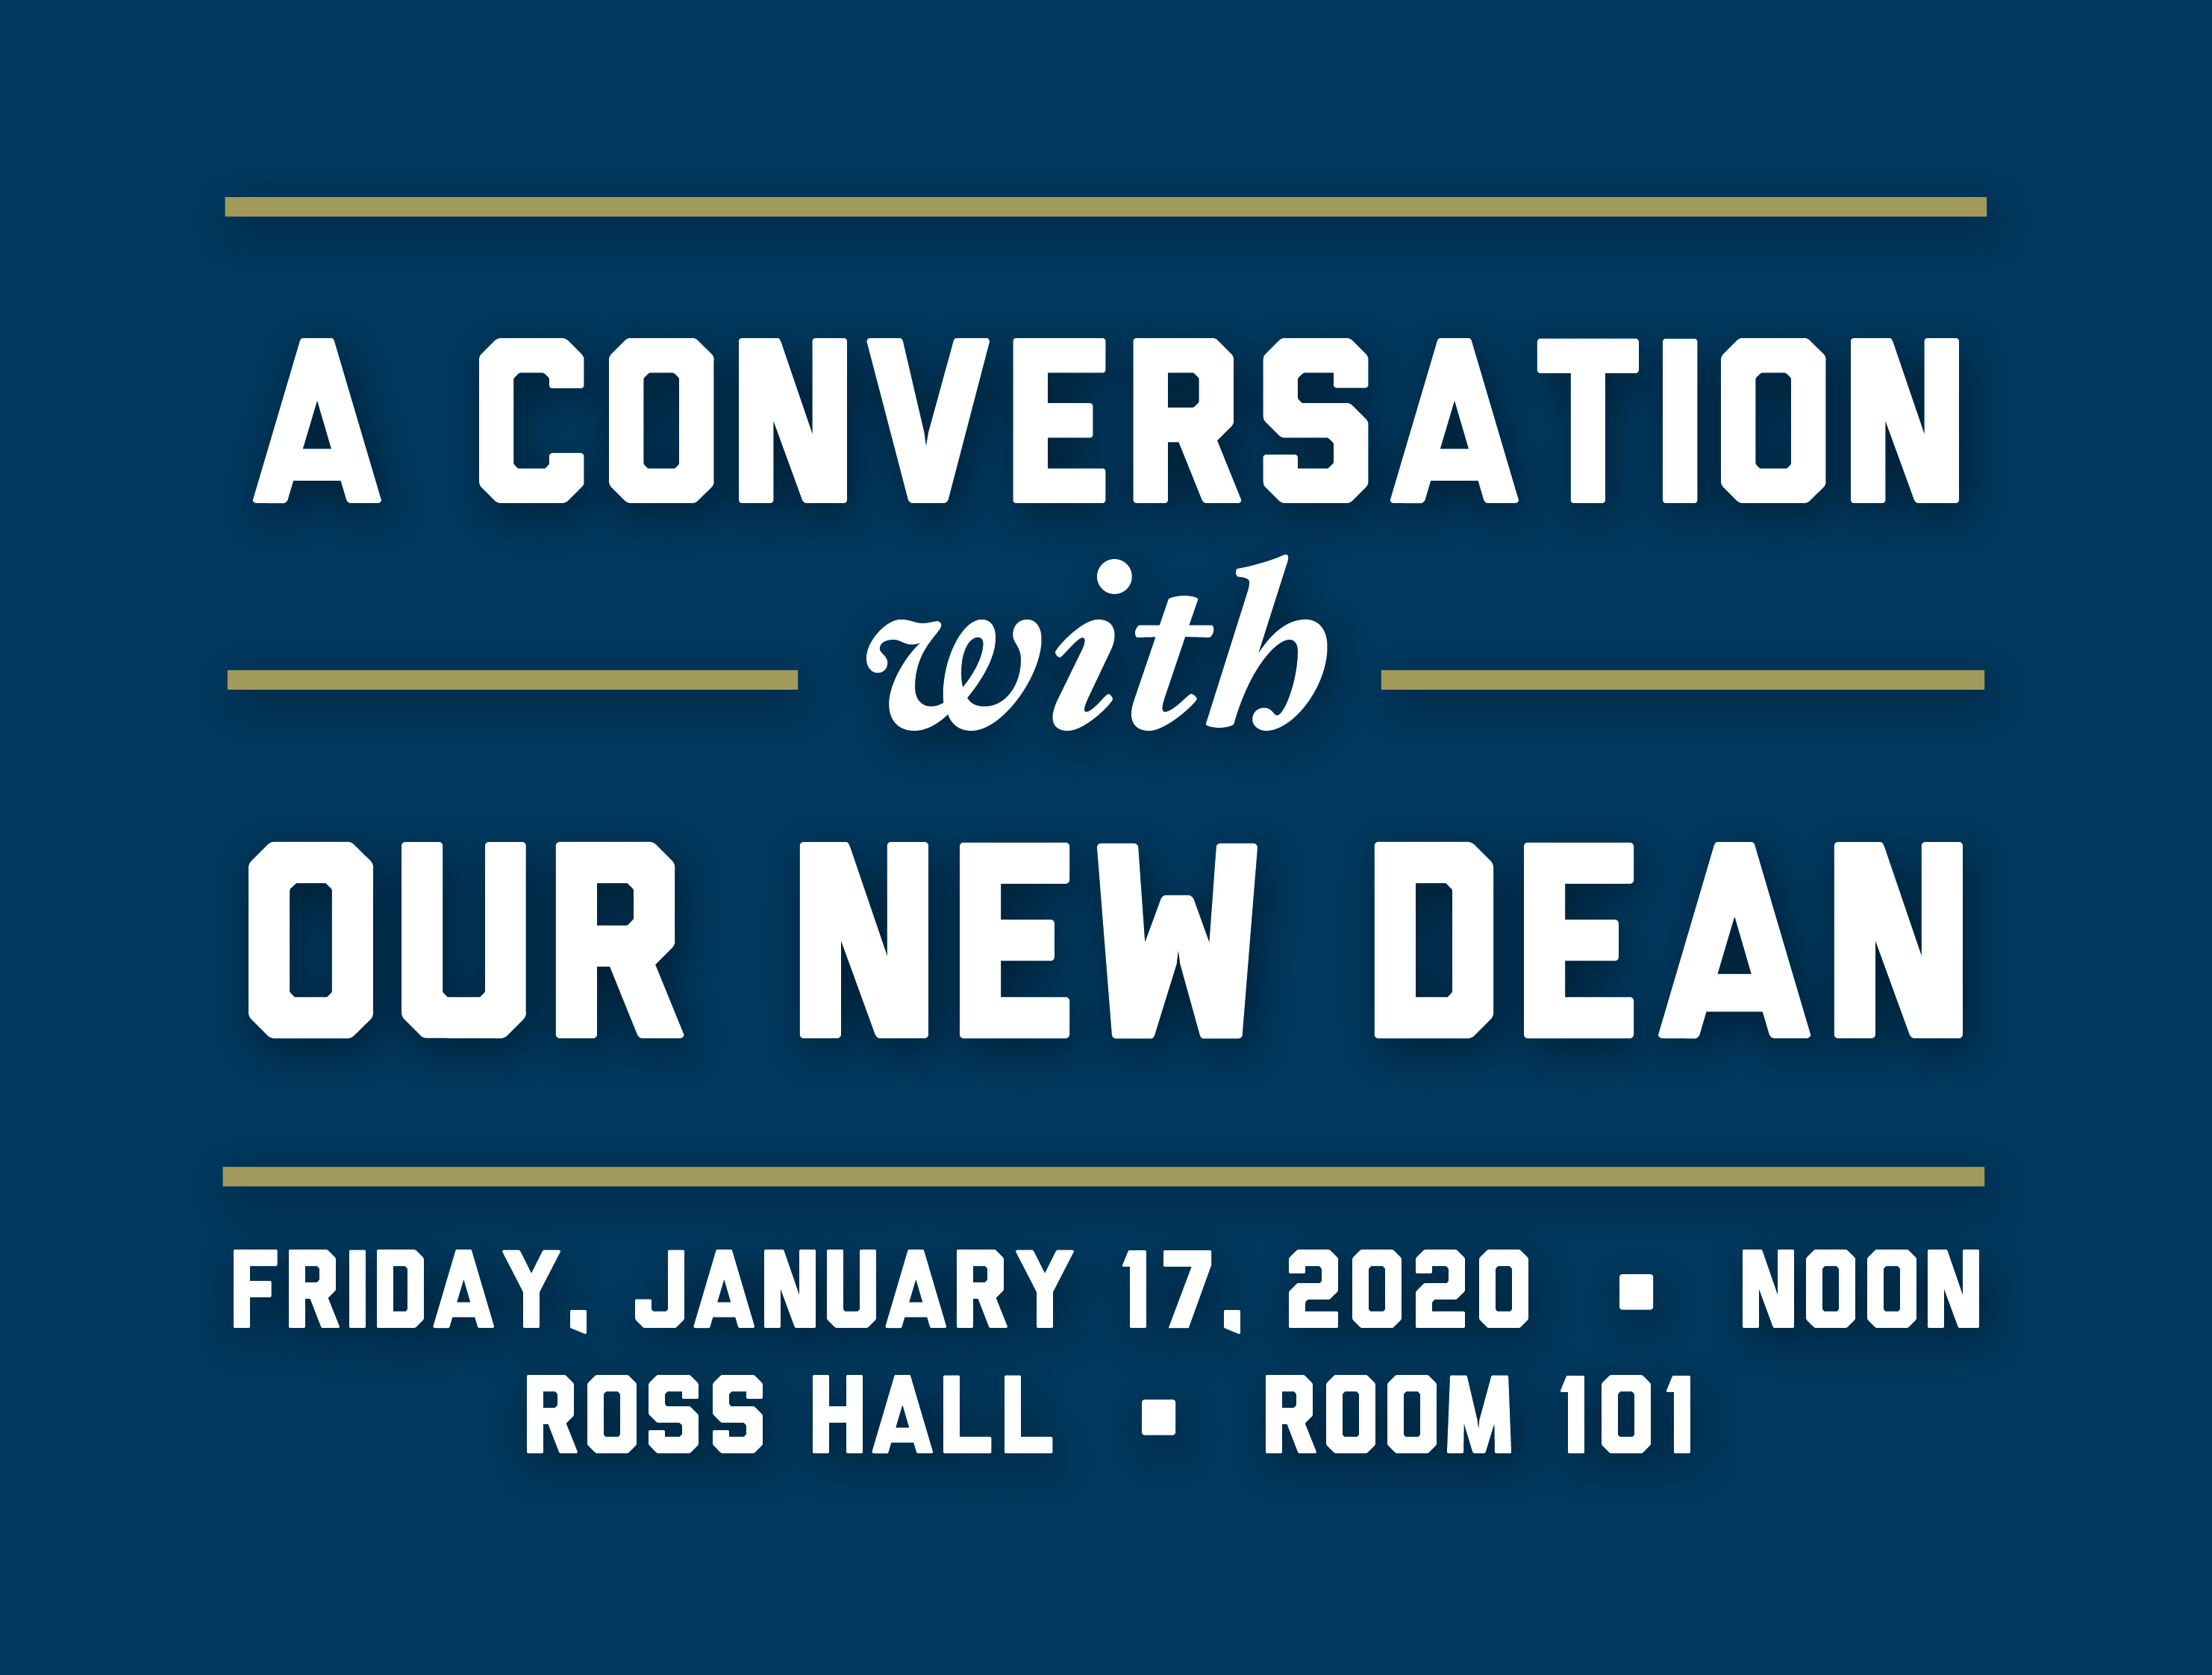 A Conversation with Our New Dean